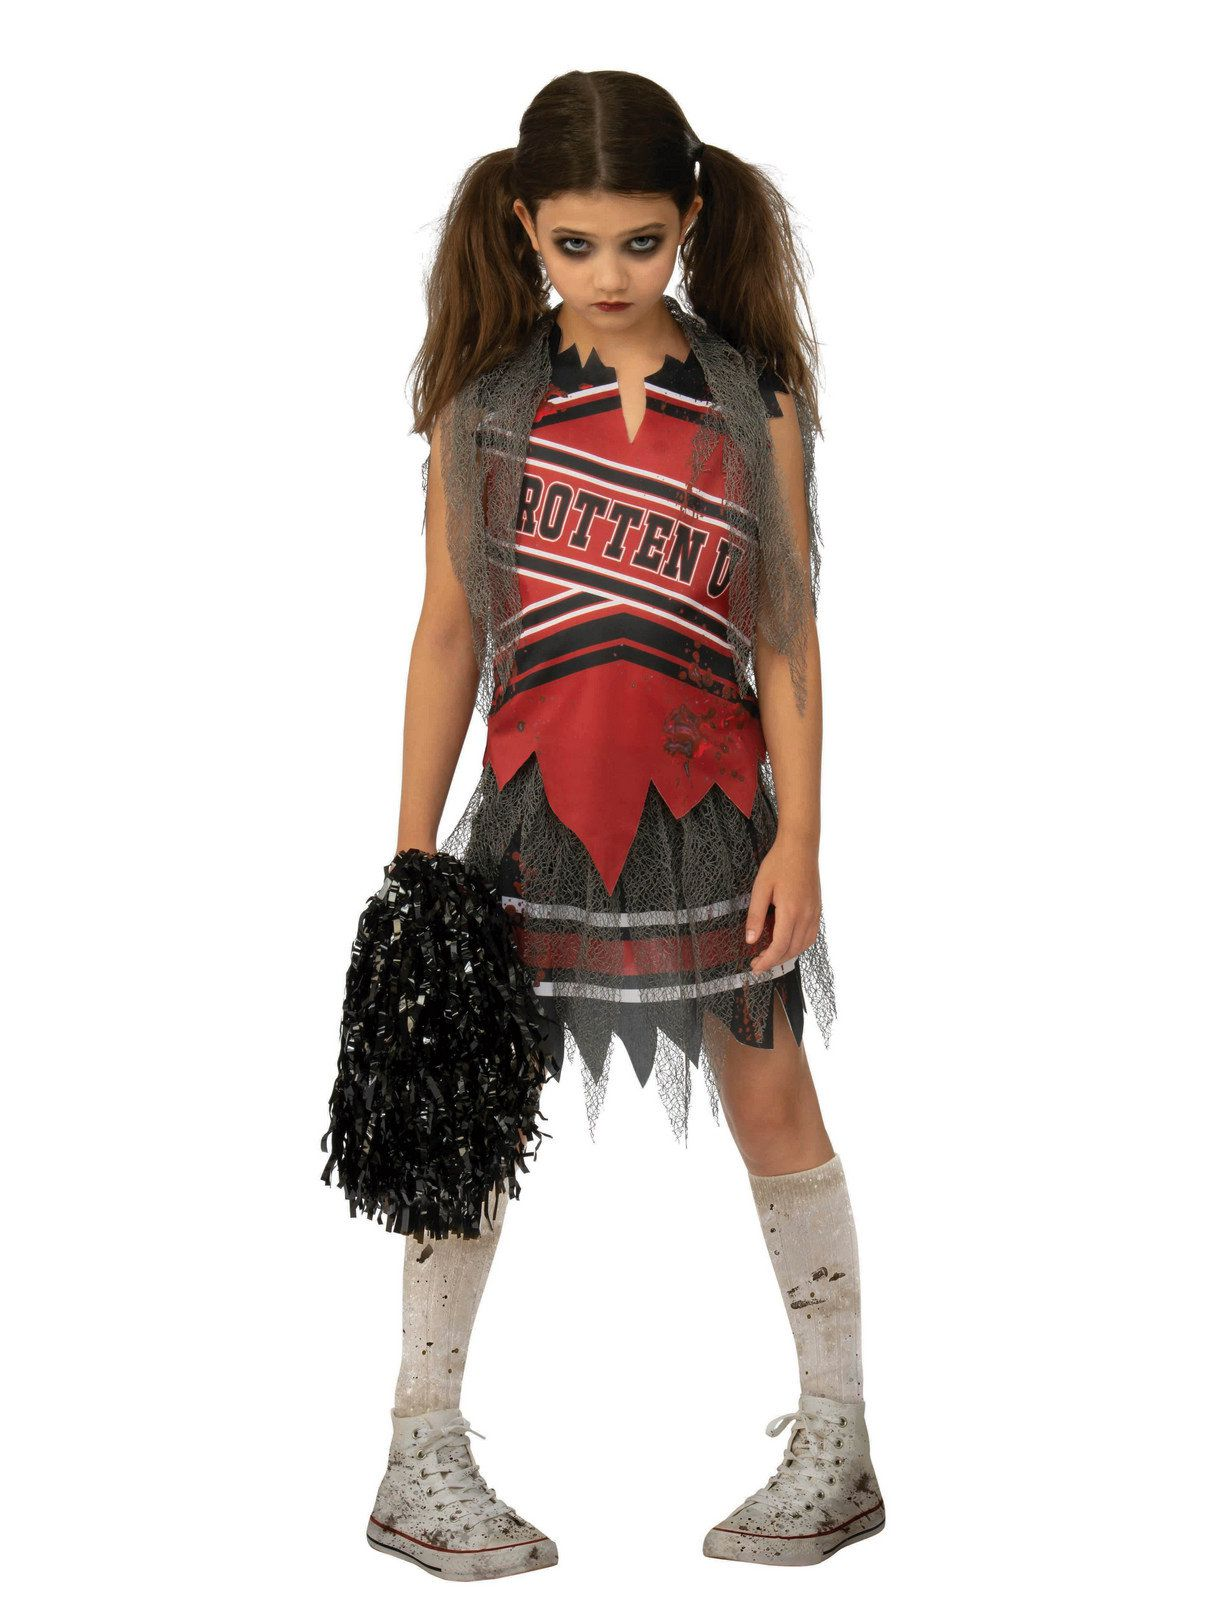 Cold Spiritless Cheerleader Costume for Girls - Girls Costumes for ... 8756f36ac